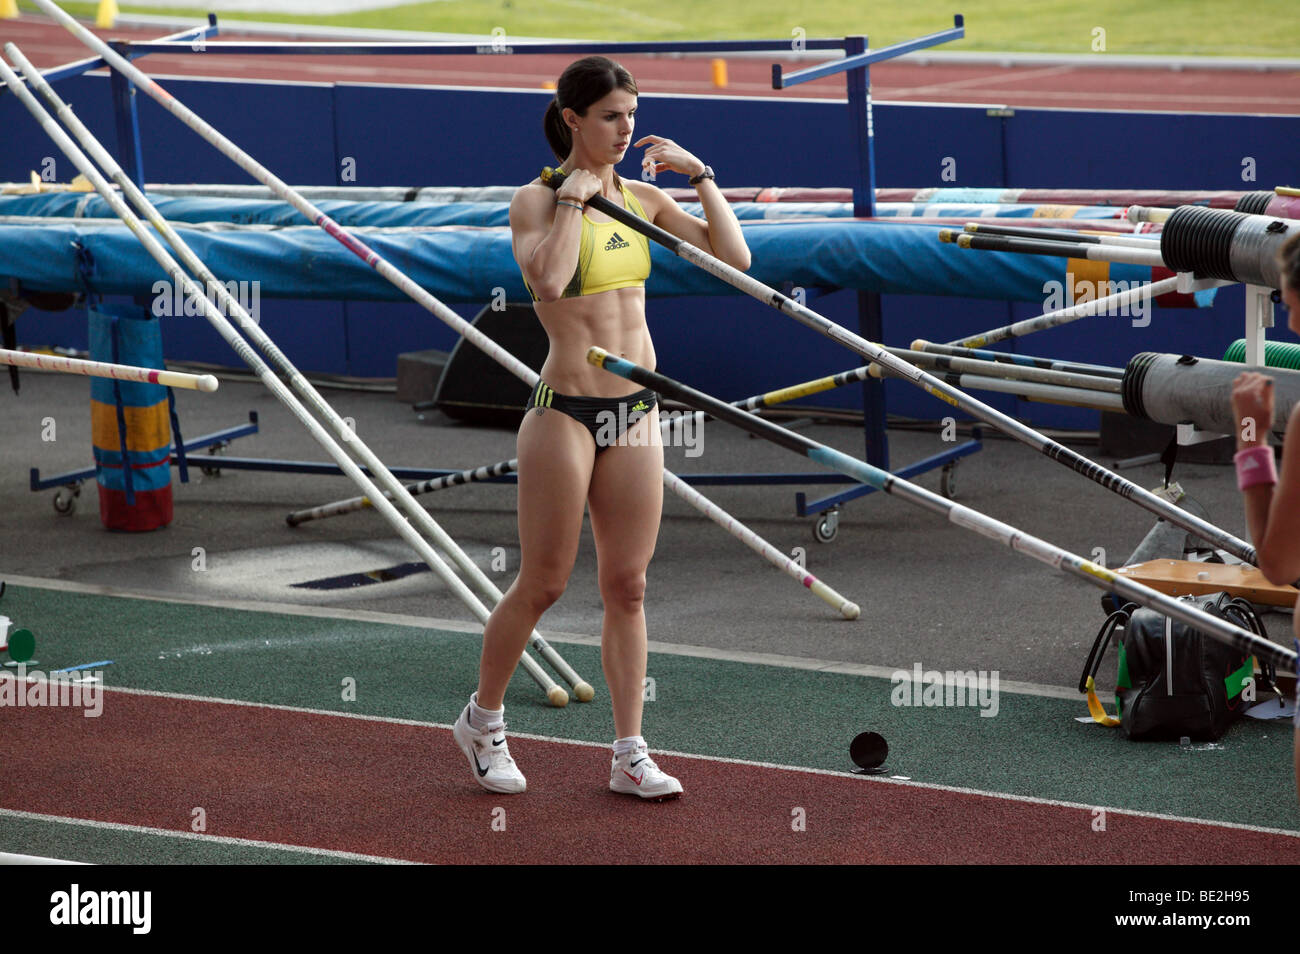 Kate Dennison preparing to jump, during the Women's Pole Vault competition at the Aviva London Grand Prix, 2009 - Stock Image